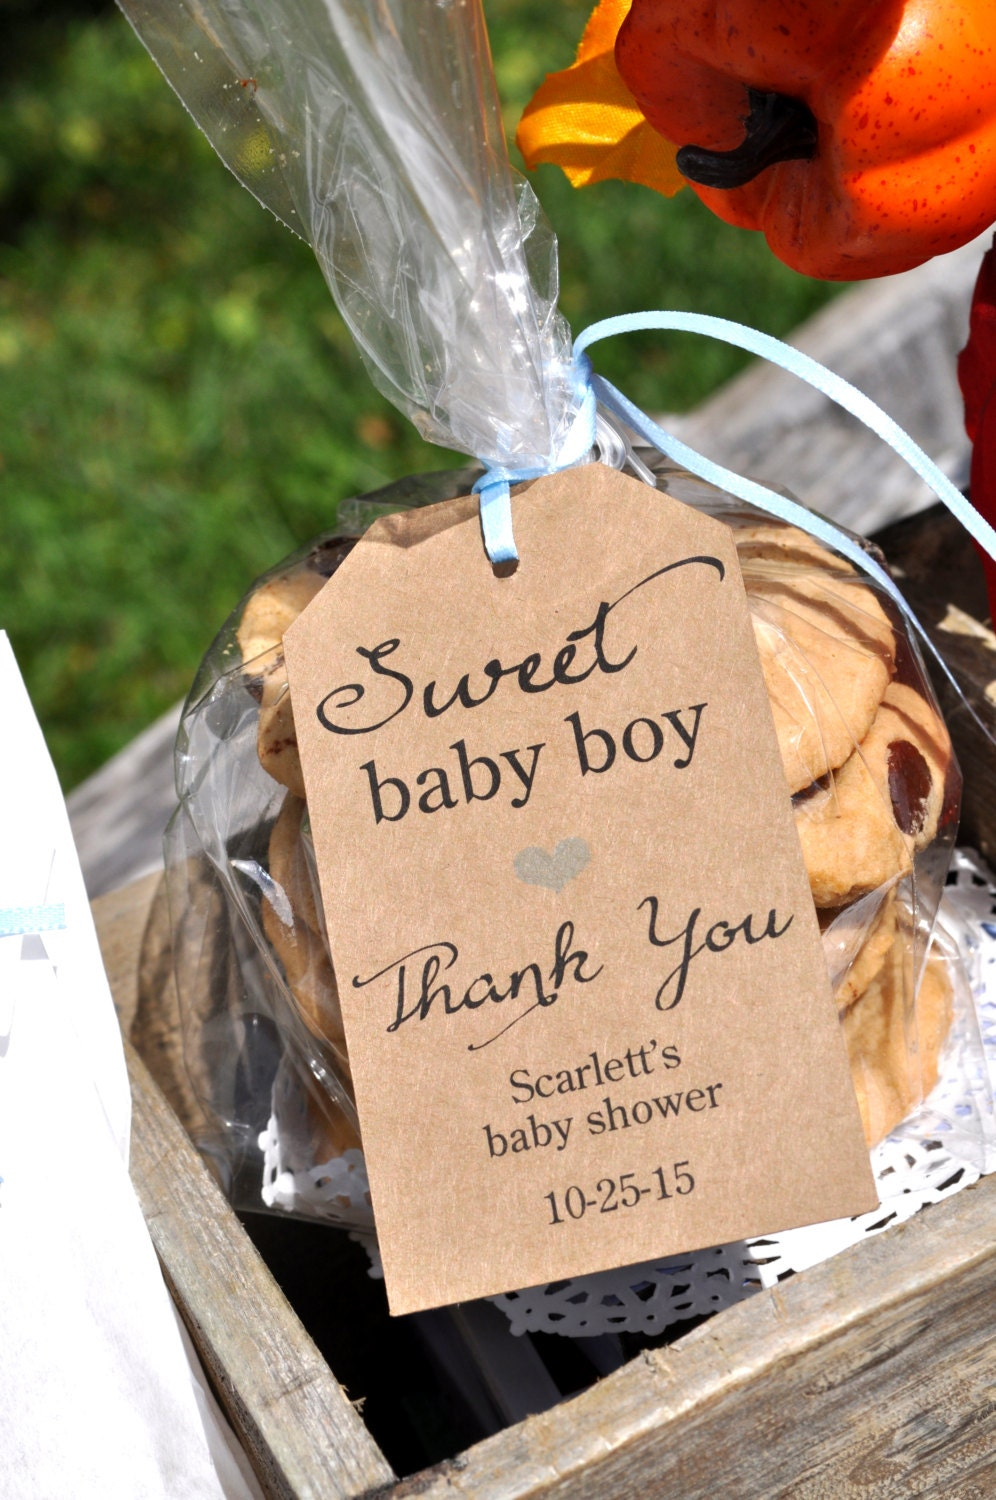 Rustic baby shower favor tags sweet baby boy thank you - Baby shower invitations and decorations ...